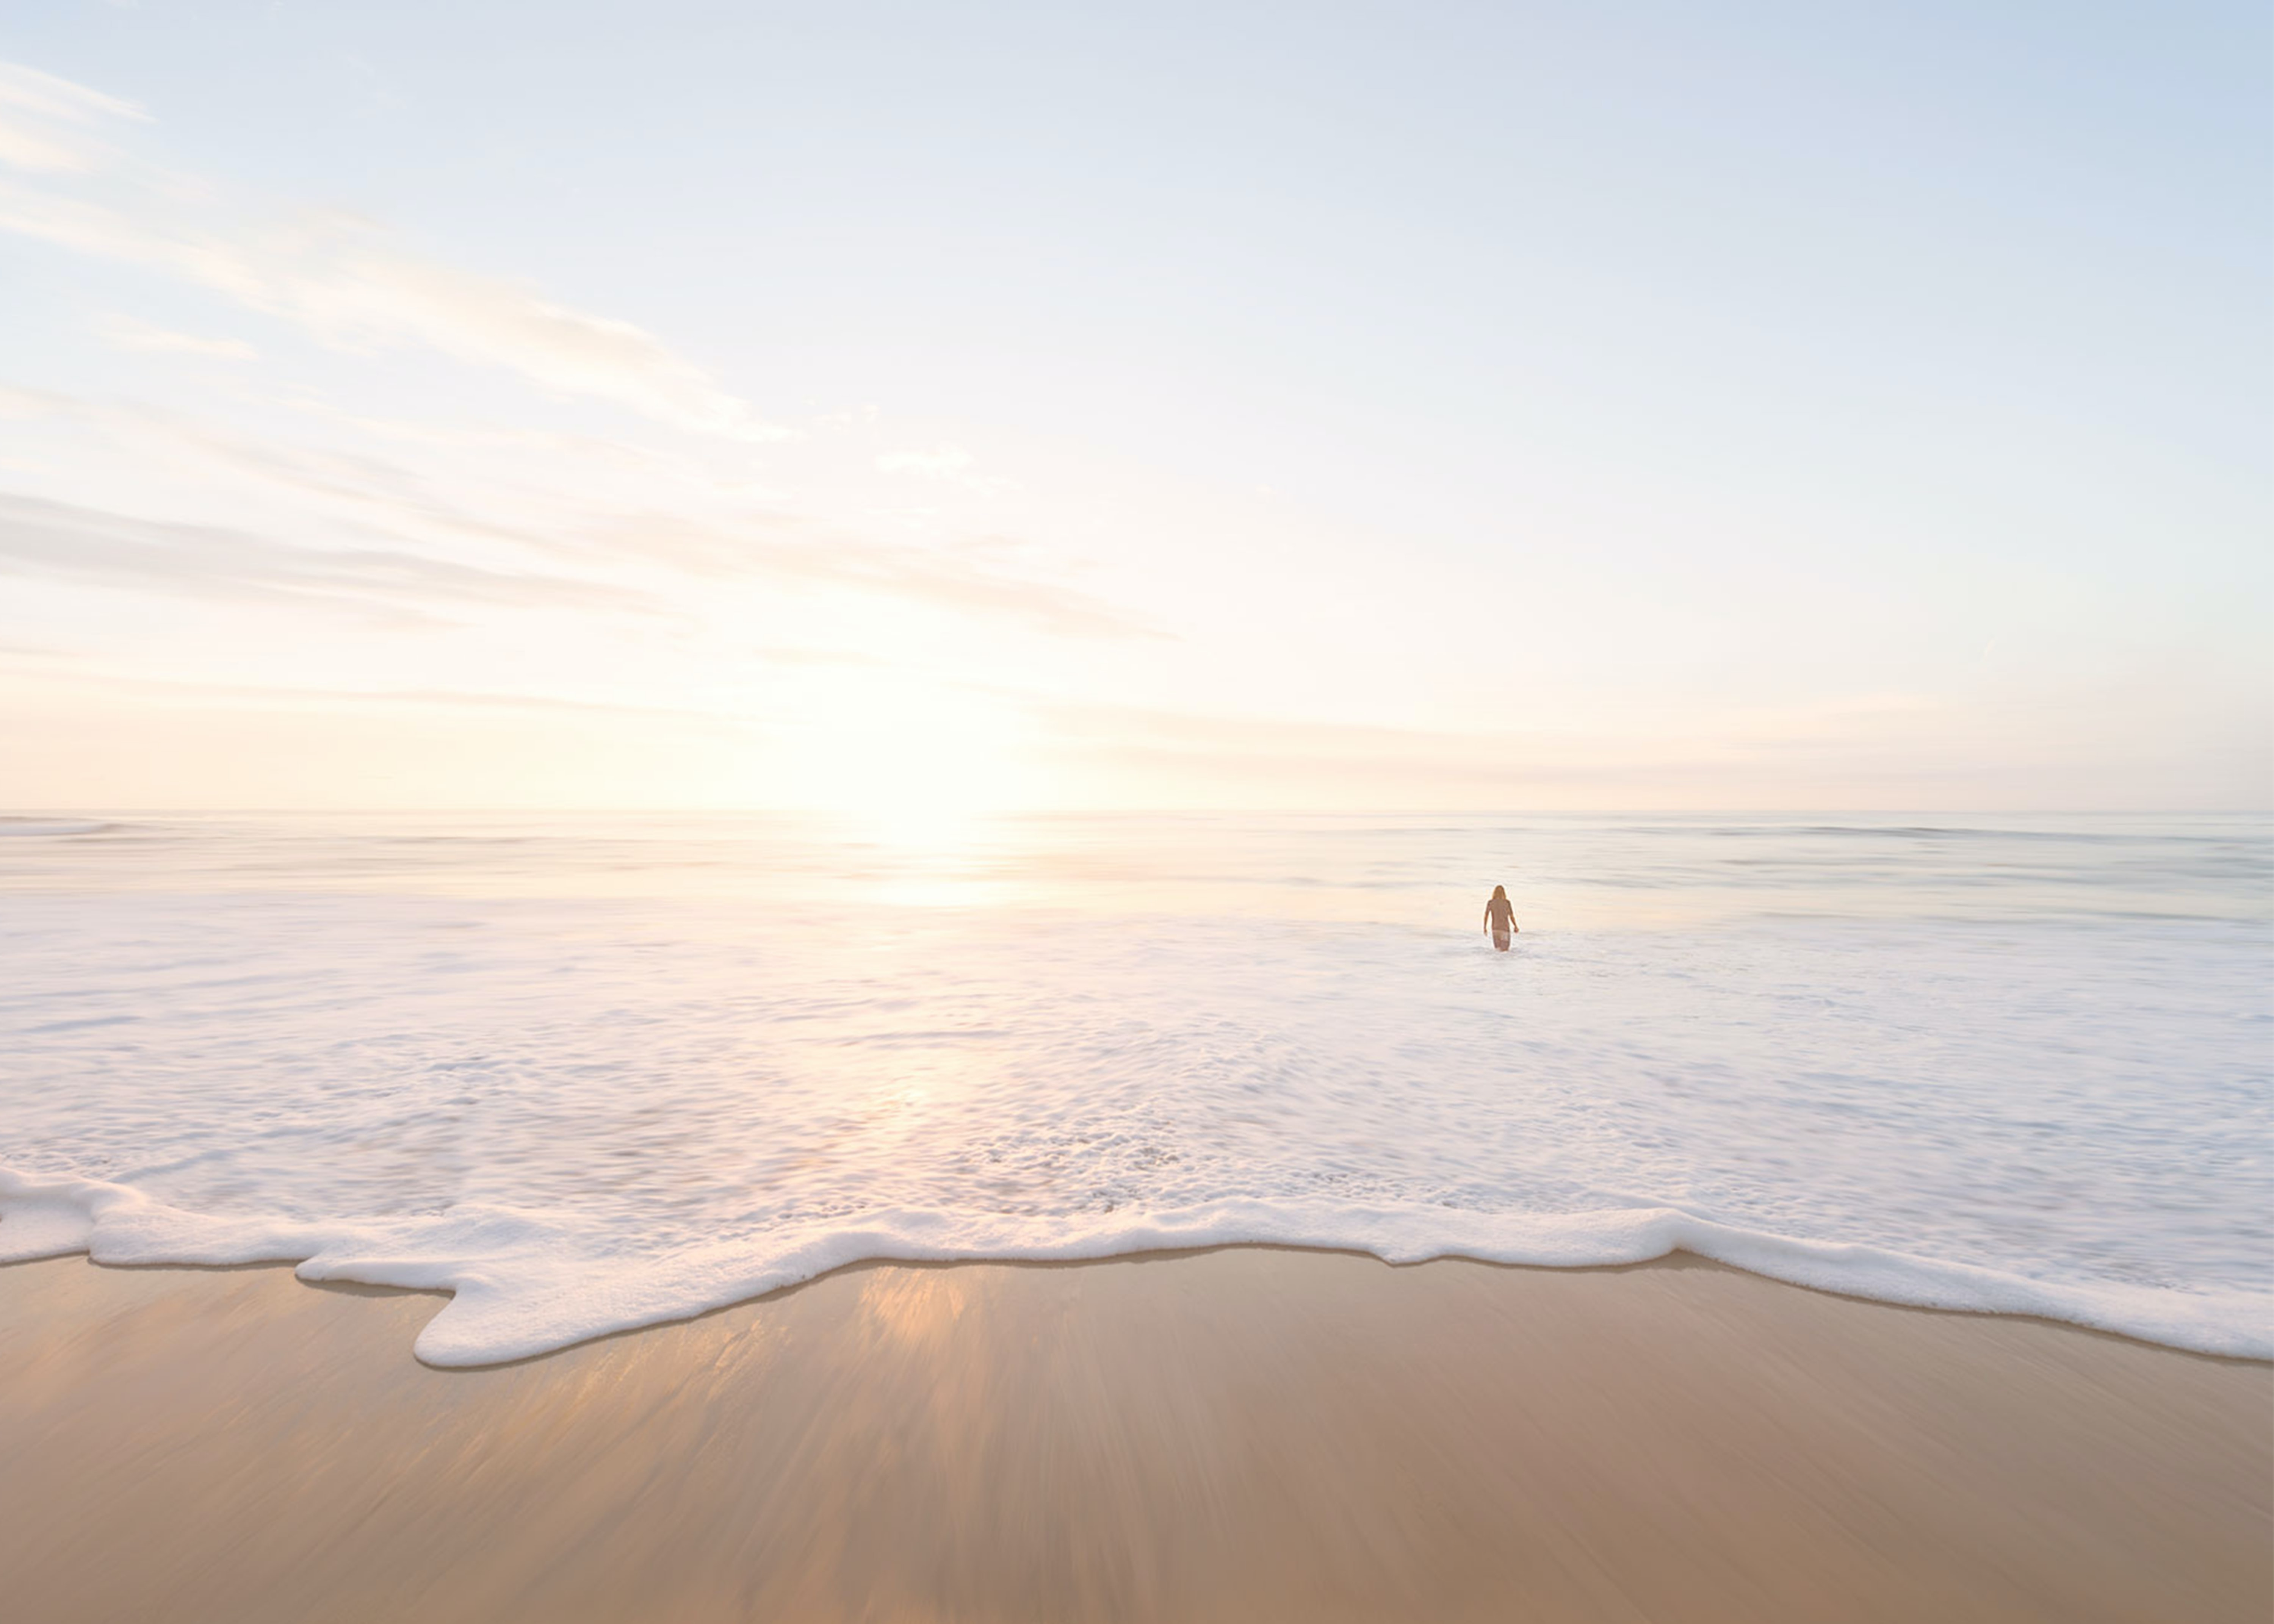 Person entering the calm ocean at the sand beach in San Diego